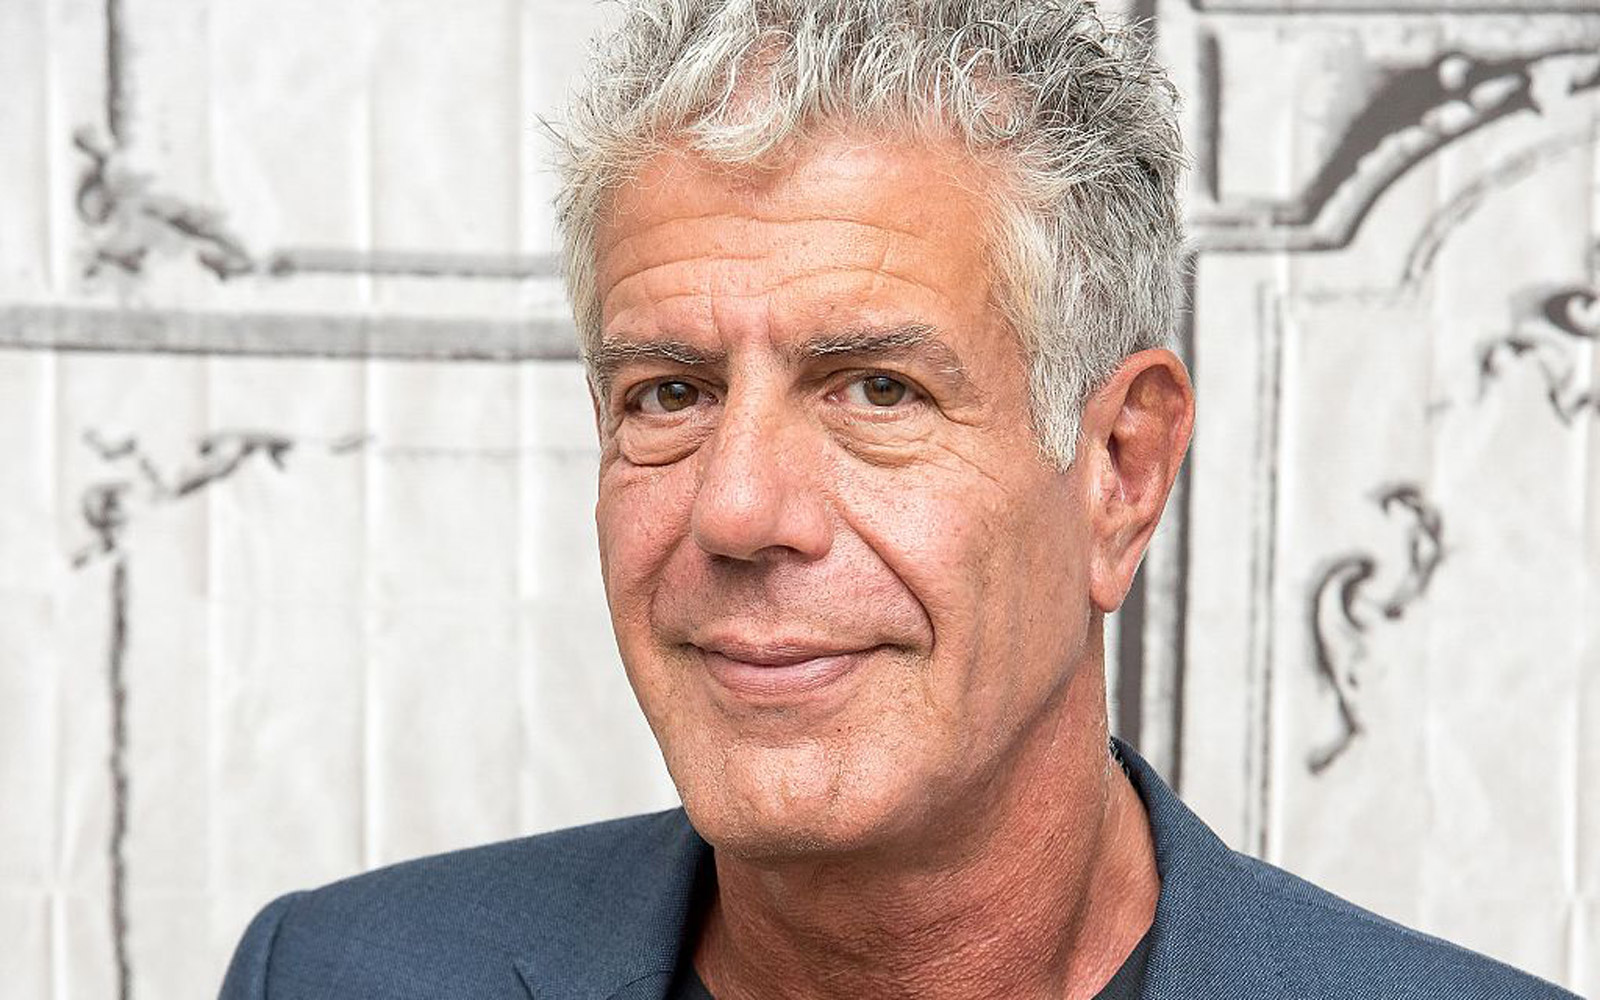 Anthony Bourdain's Detroit Documentary Will Focus on the City's Past